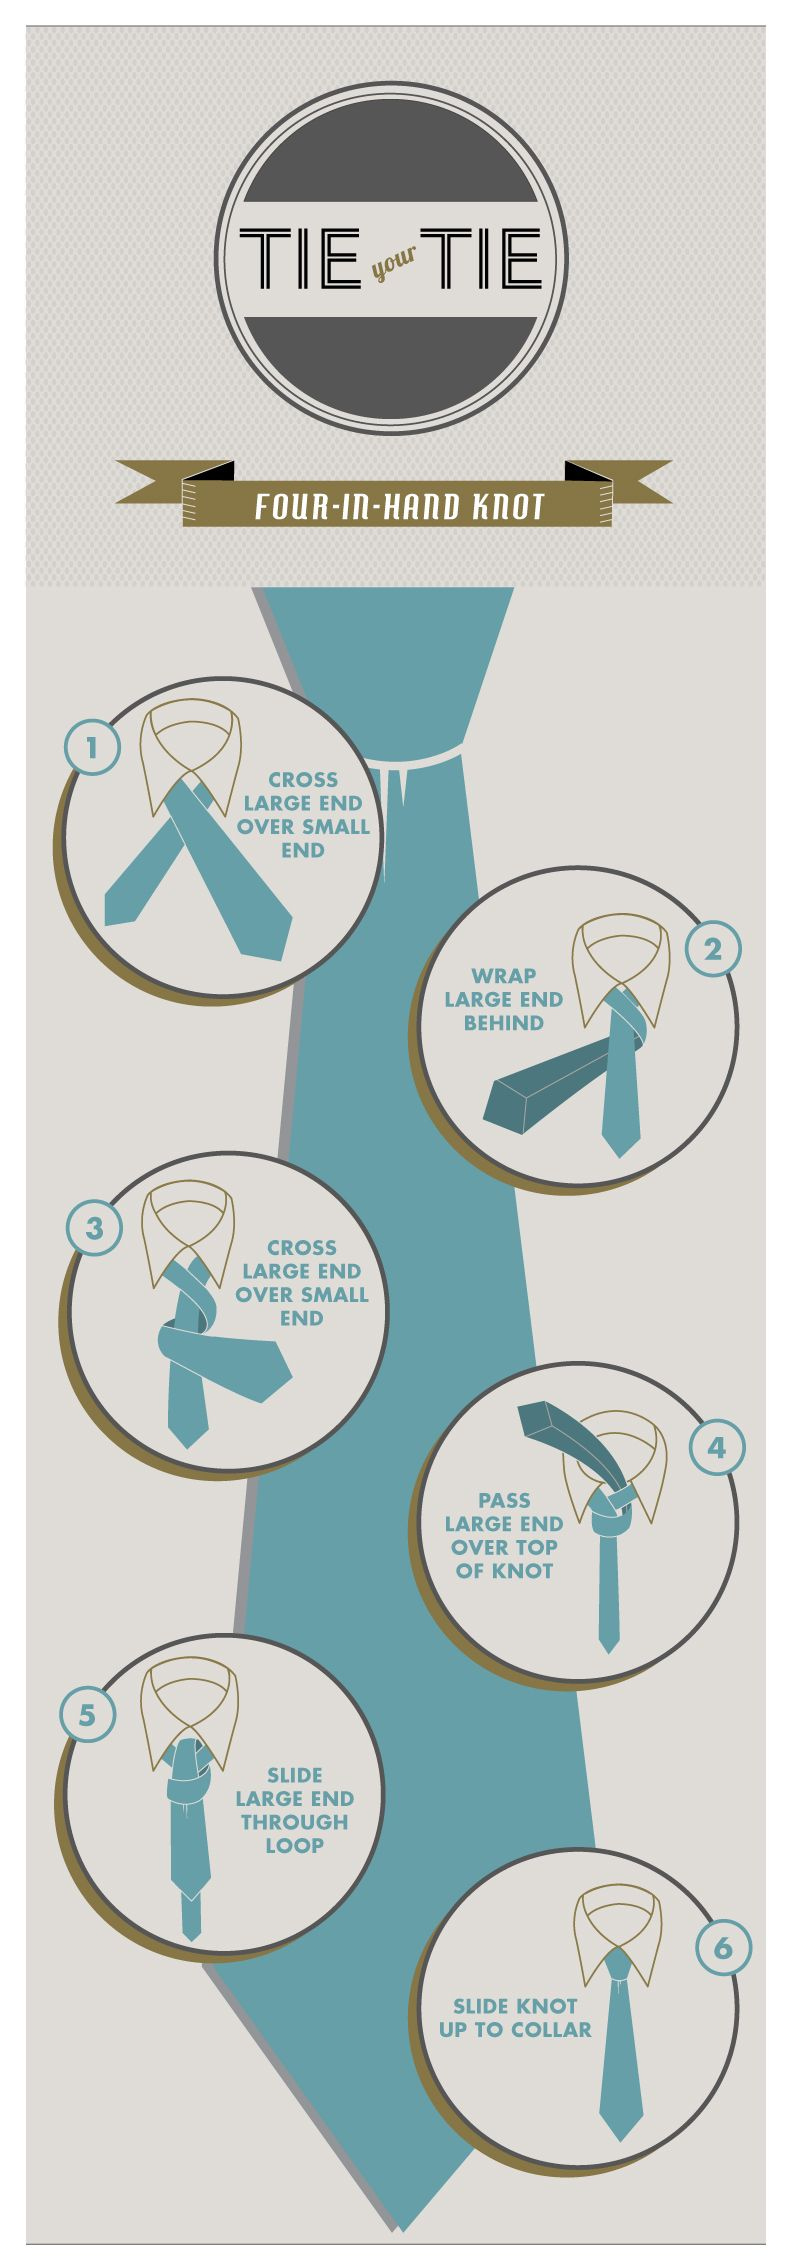 A graphic explaining the steps for tying a standard tie knot a graphic explaining the steps for tying a standard tie knot originally created for a ccuart Images